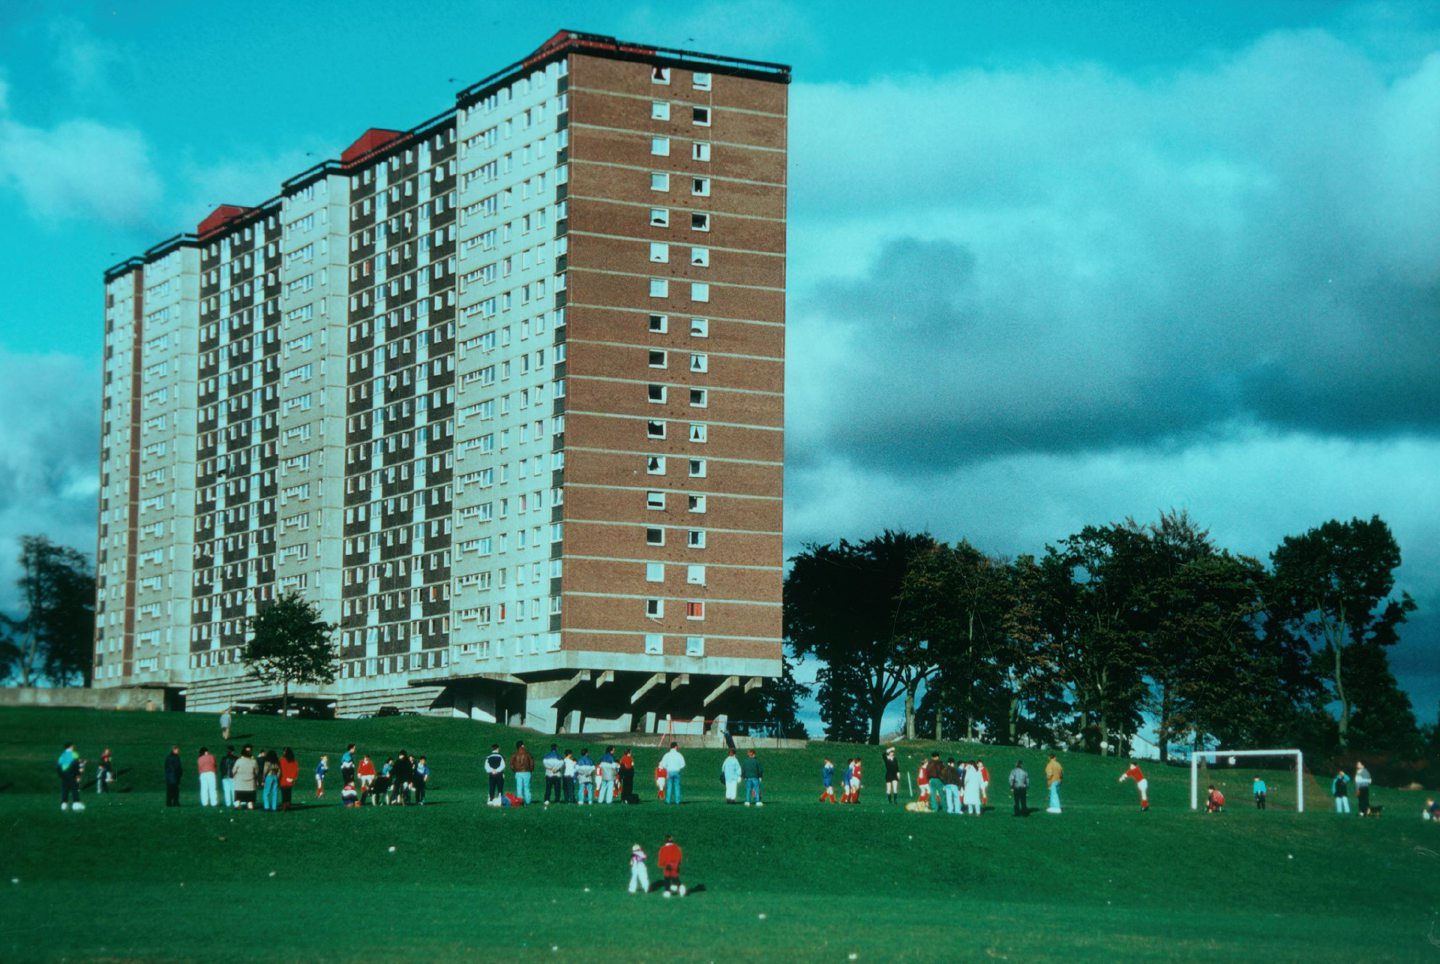 locals watch a football match at pitches next to the Ardler Multis in 1991.